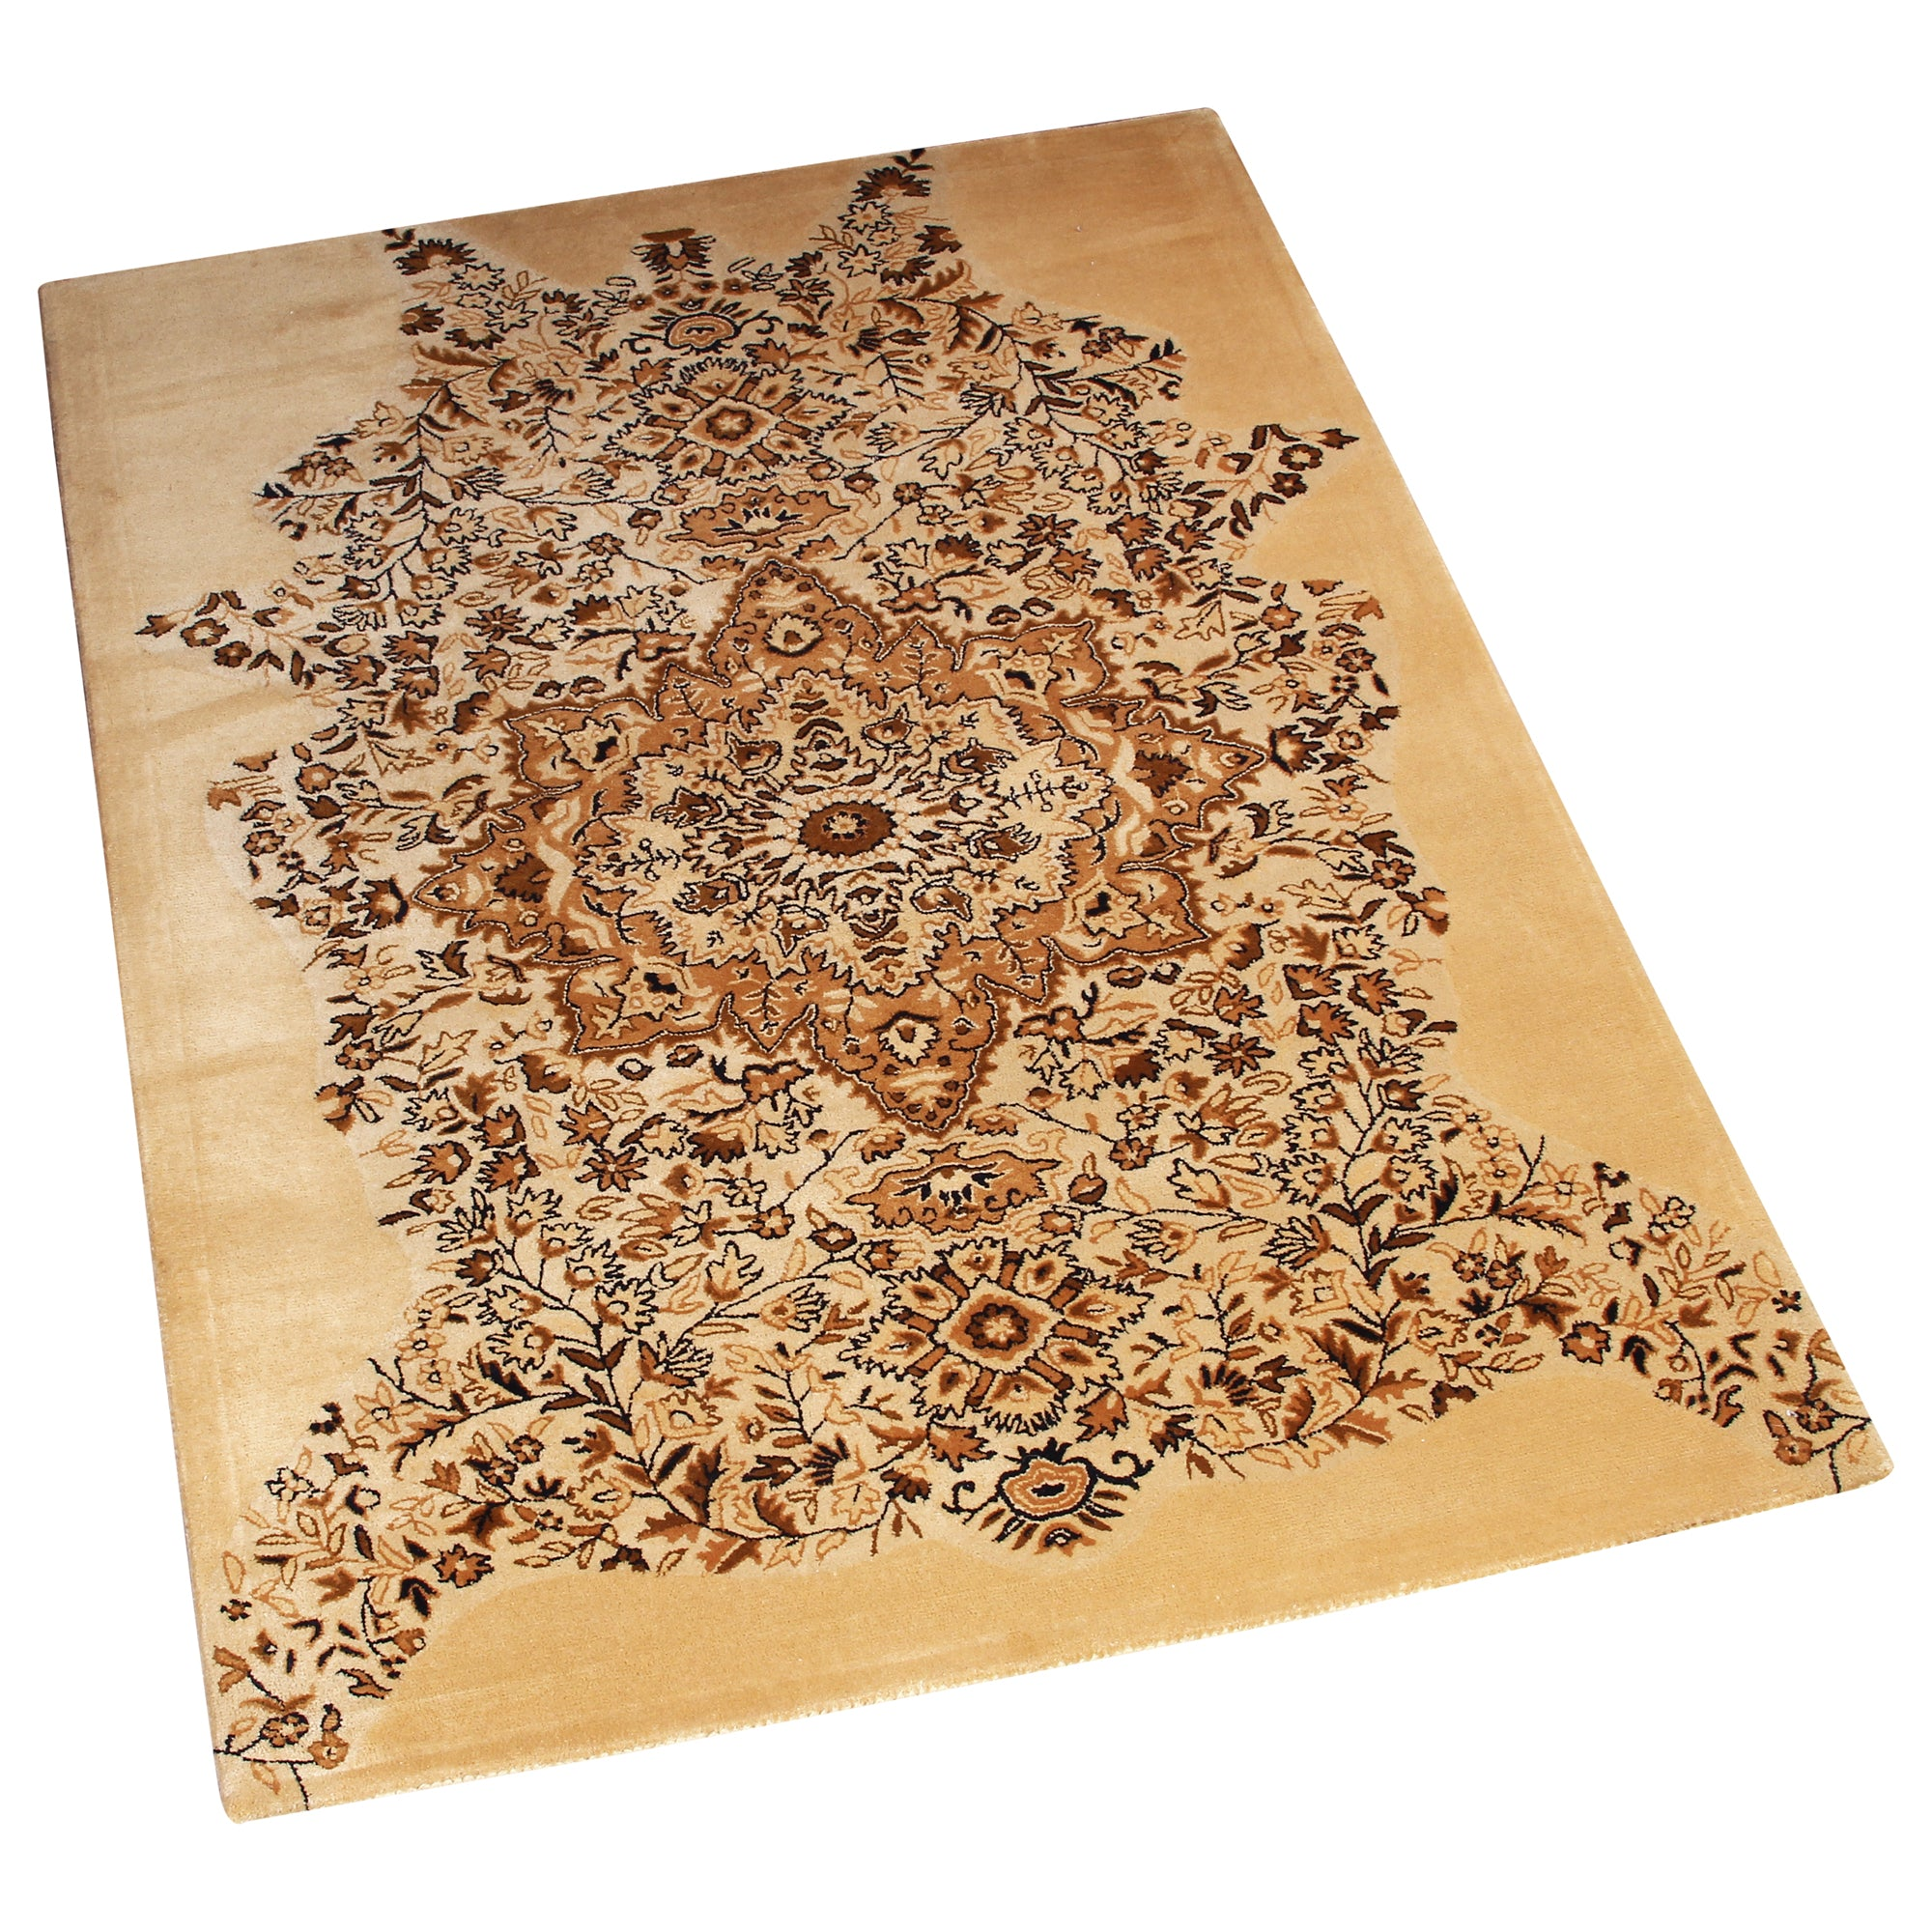 BEIGE PERSIAN HAND TUFTED RUG